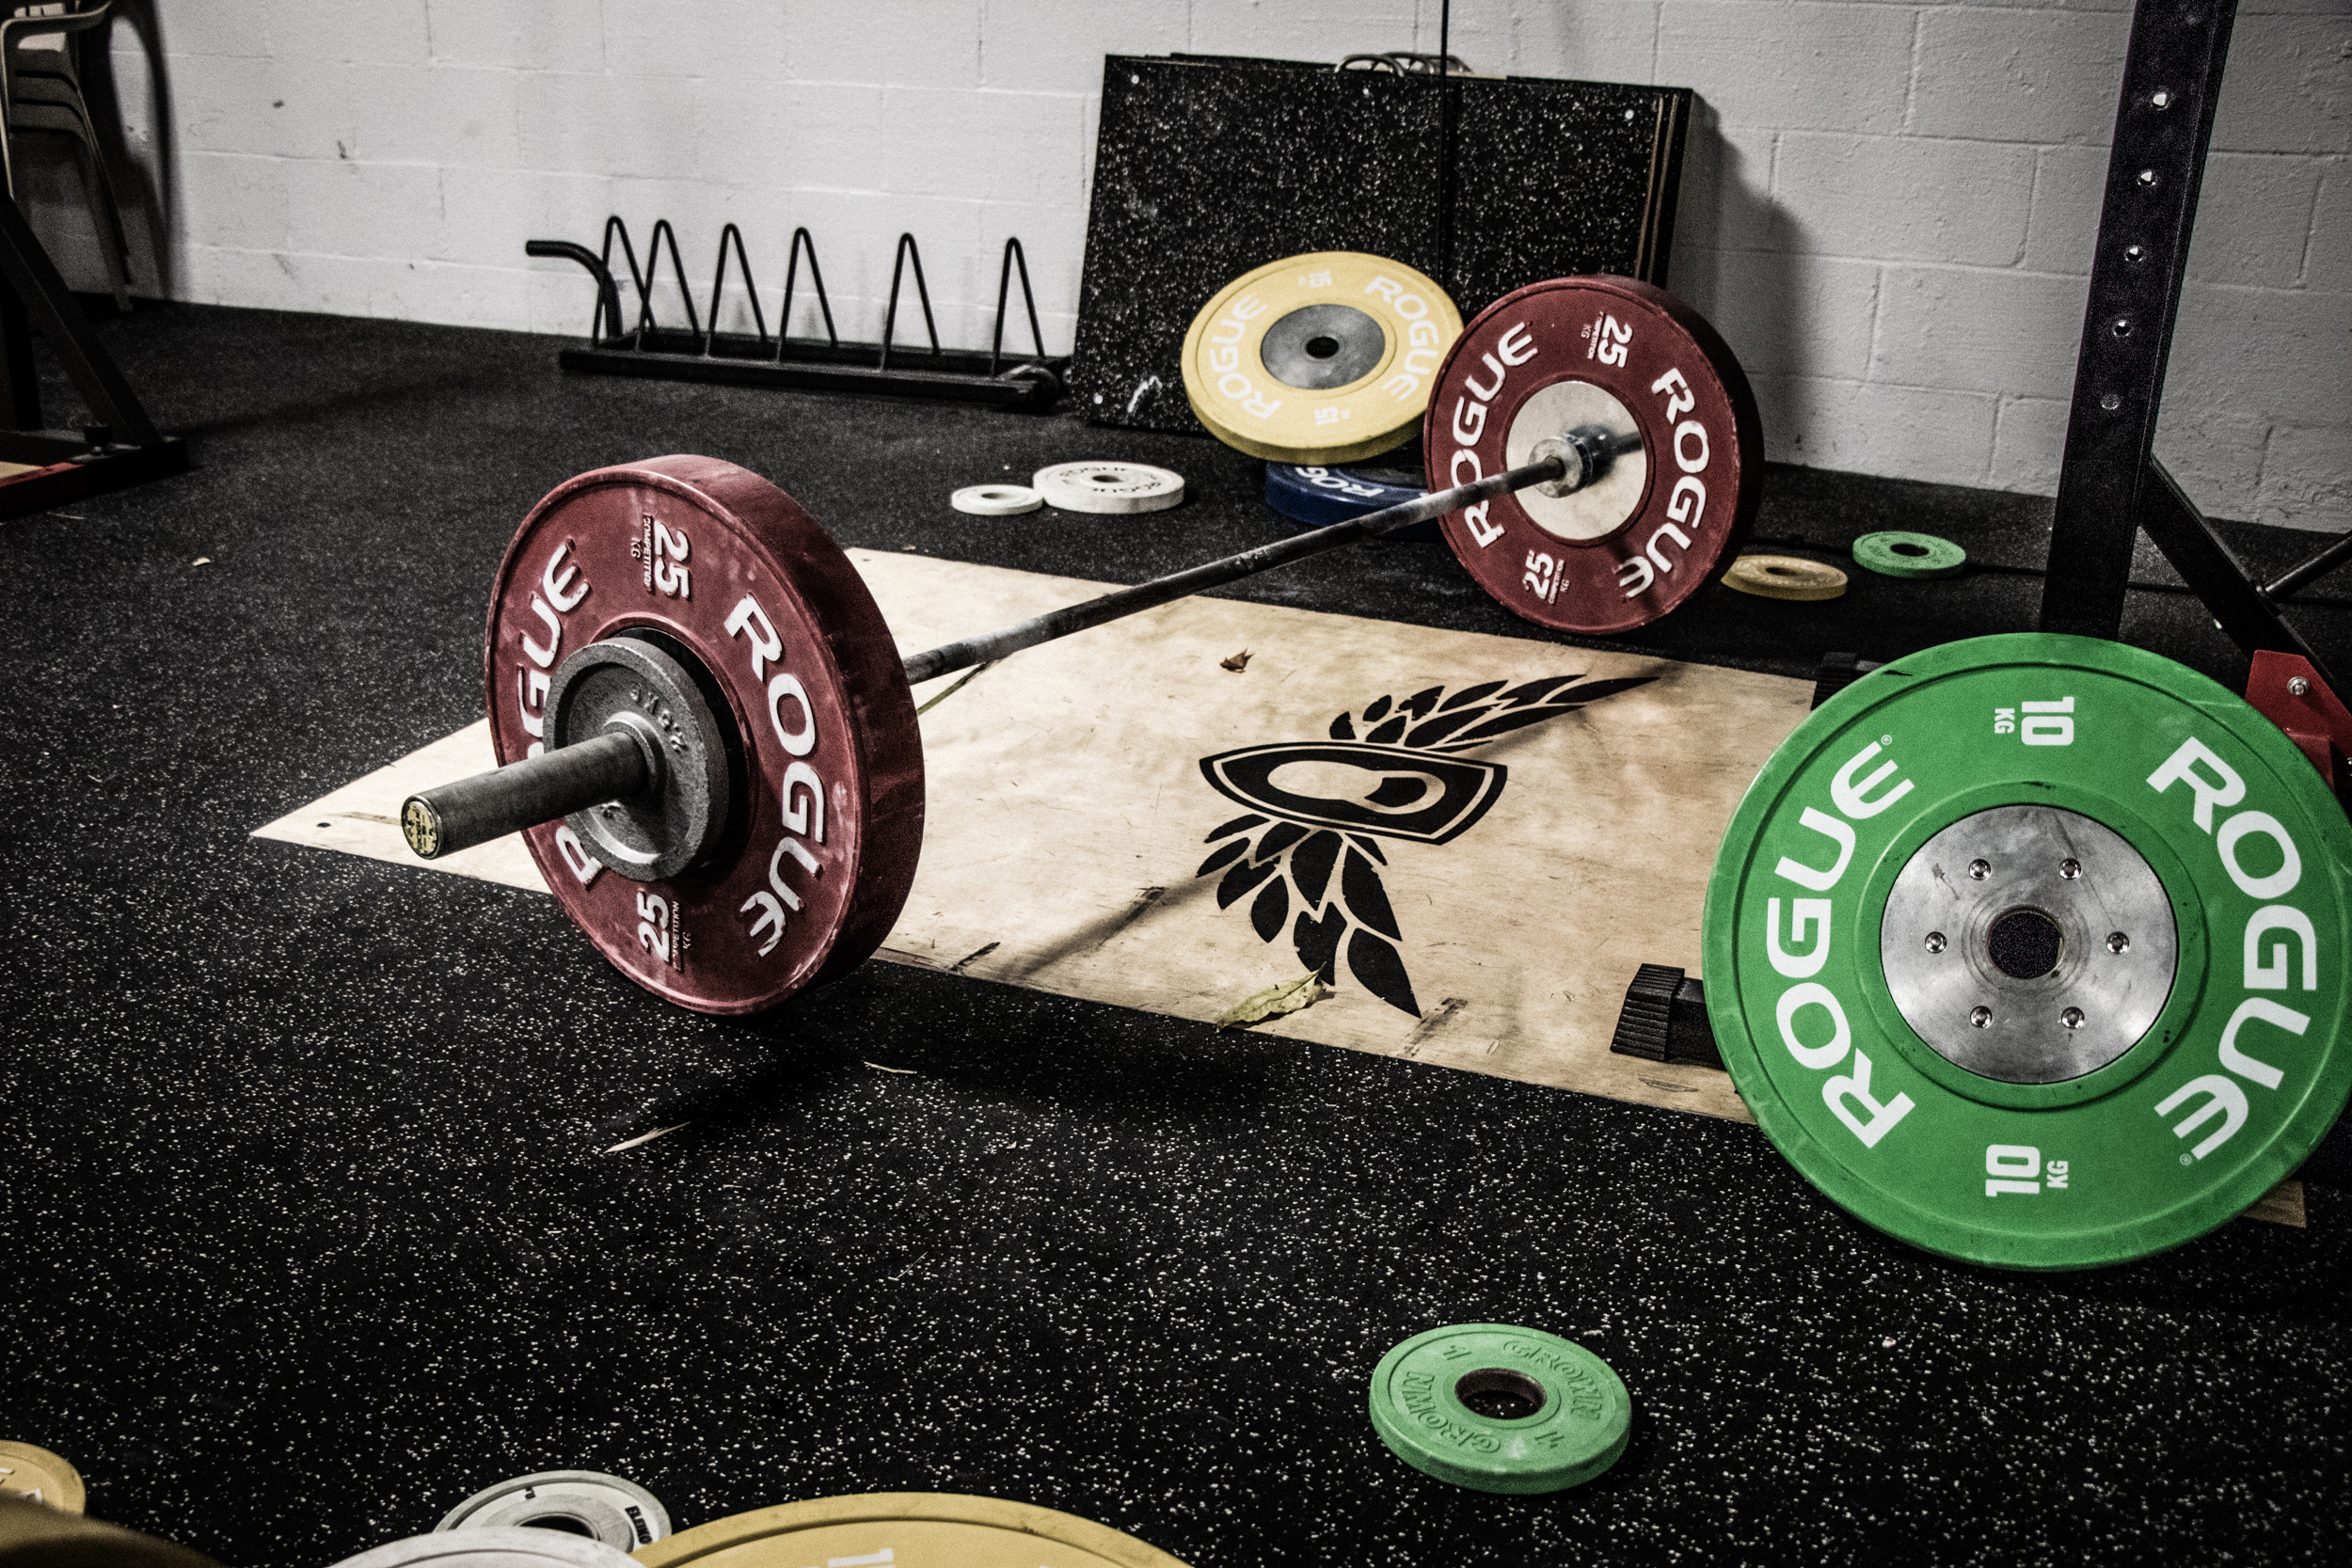 Facility - We have everything you need to train in weightlifting, from kilogram and pound bumper plates to needle-bearing barbells, platforms, squat racks, jerk blocks, and a wide variety of accessory equipment.